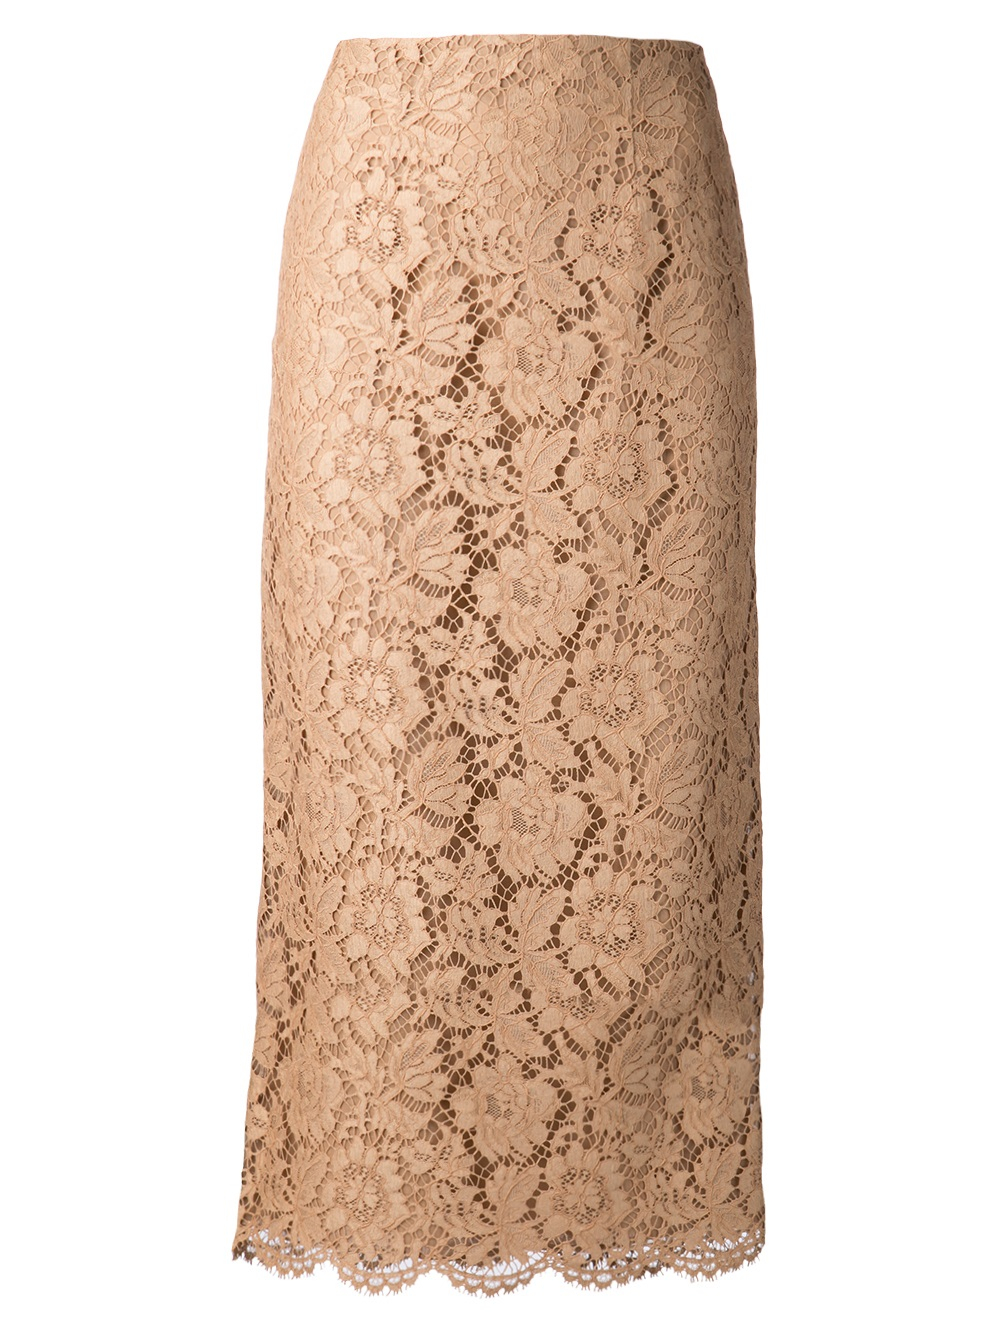 Related: long lace skirt lace up skirt tulle skirt lace dress crochet skirt lace skirt extender lace pencil skirt lace top top boho skirt. Include description. Categories. All. Clothing, Shoes & Accessories; Women's Clothing. Selected category Skirts; J Crew Black Lace Pencil Skirt NWT 2. Brand New.